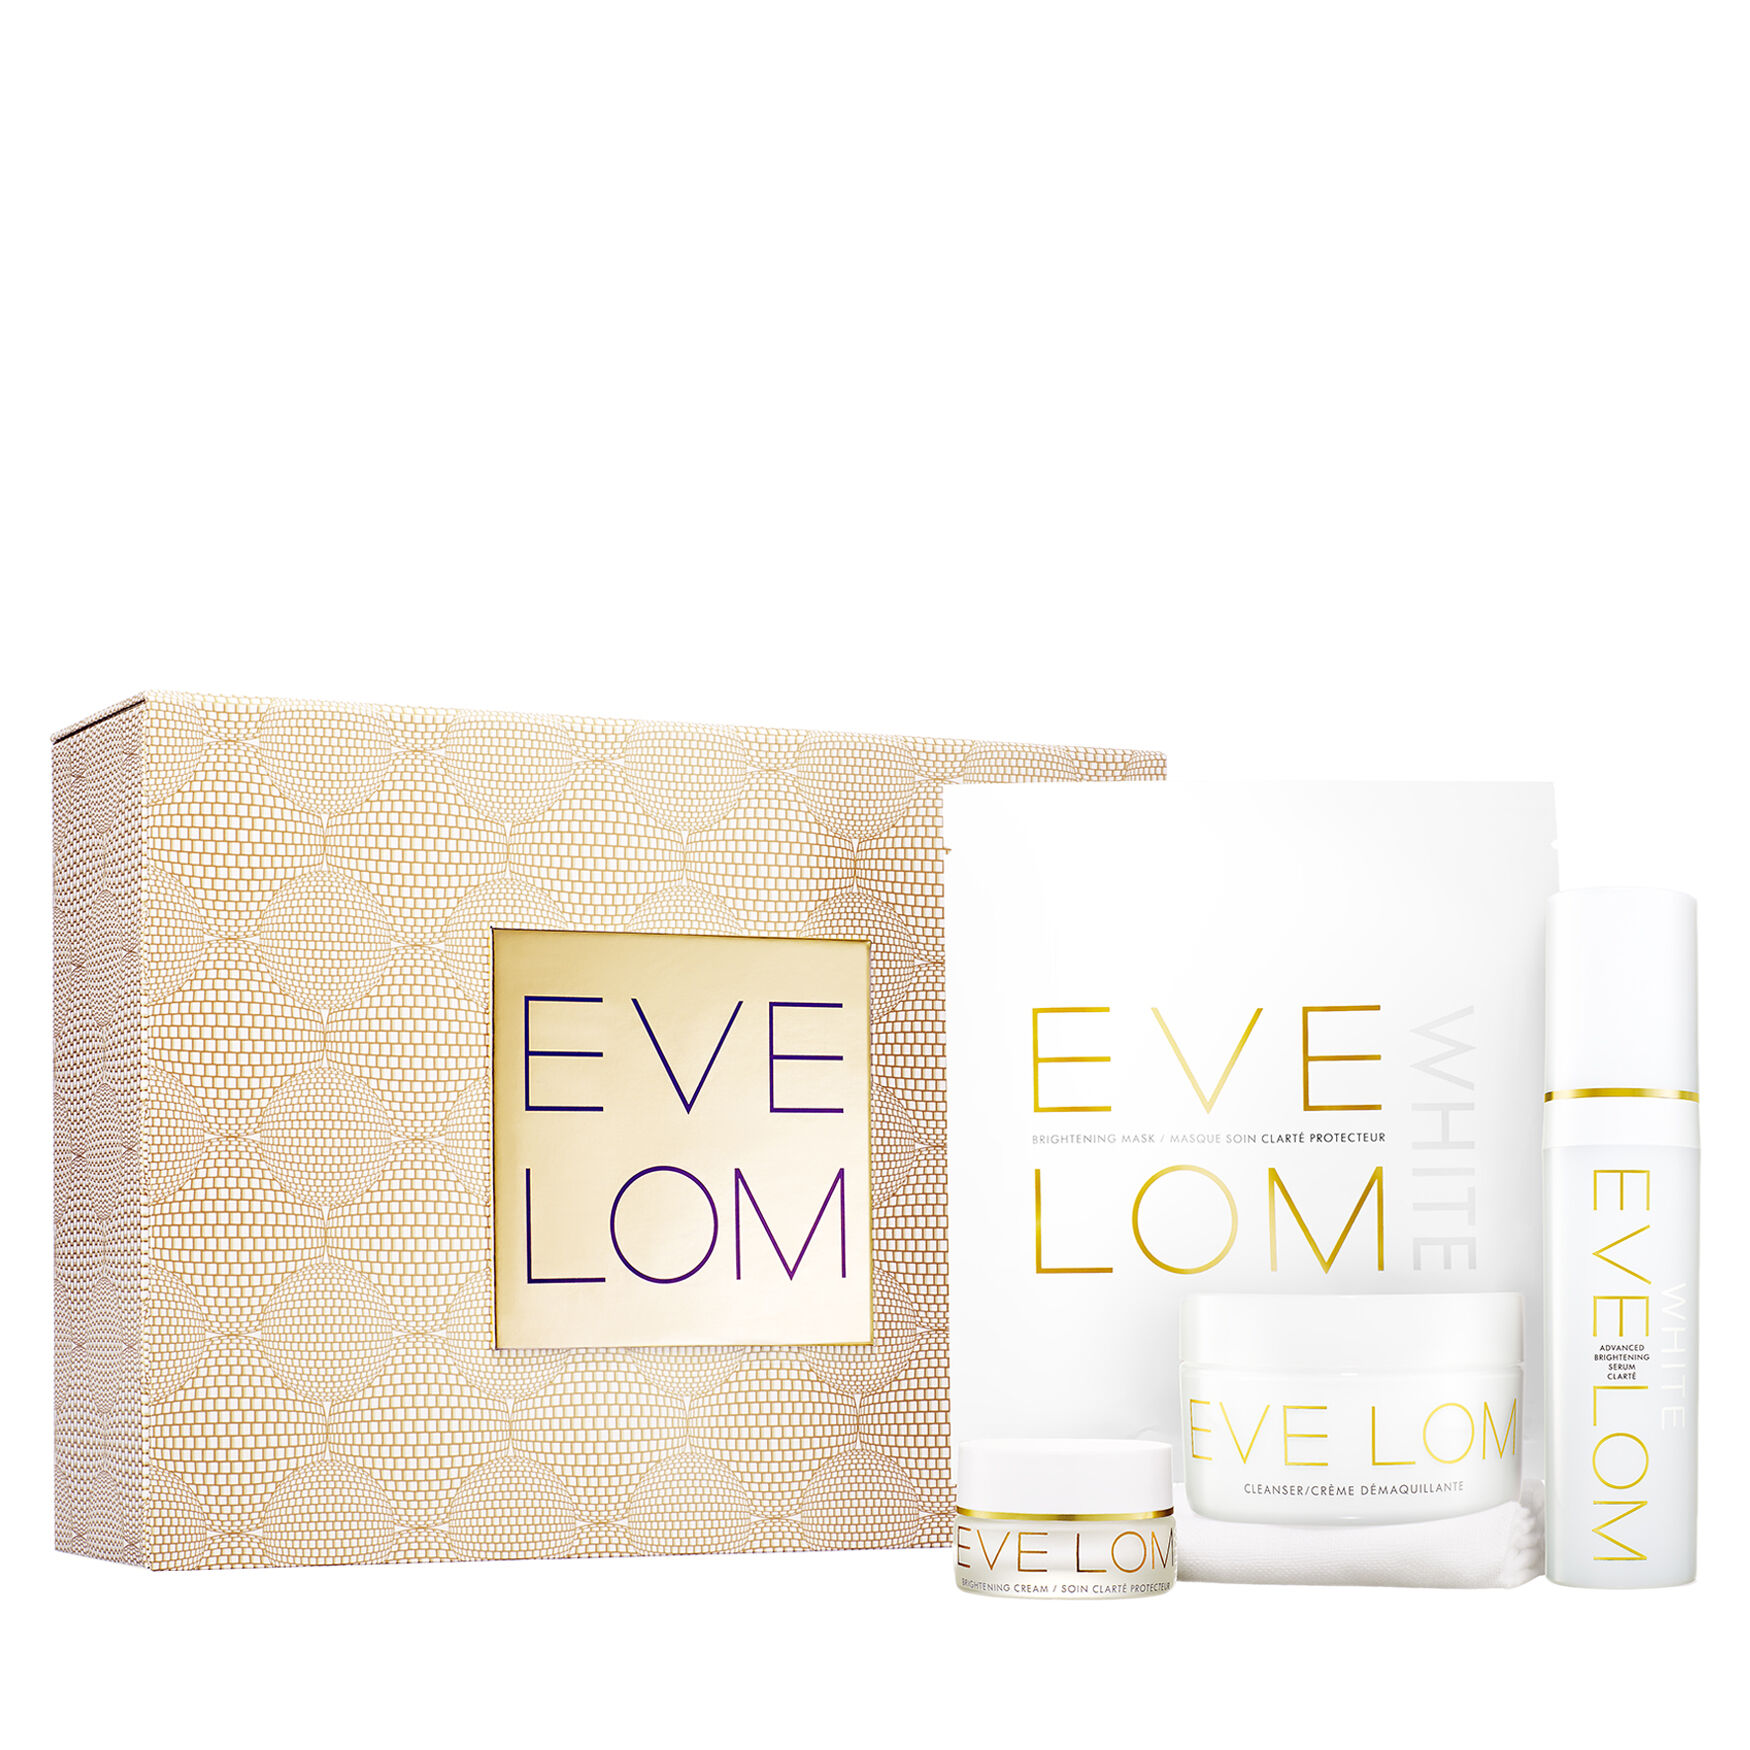 Eve Lom Perfecting Ritual 4-Piece Set jurlique herbal recovery advanced serum - 30ml/1oz